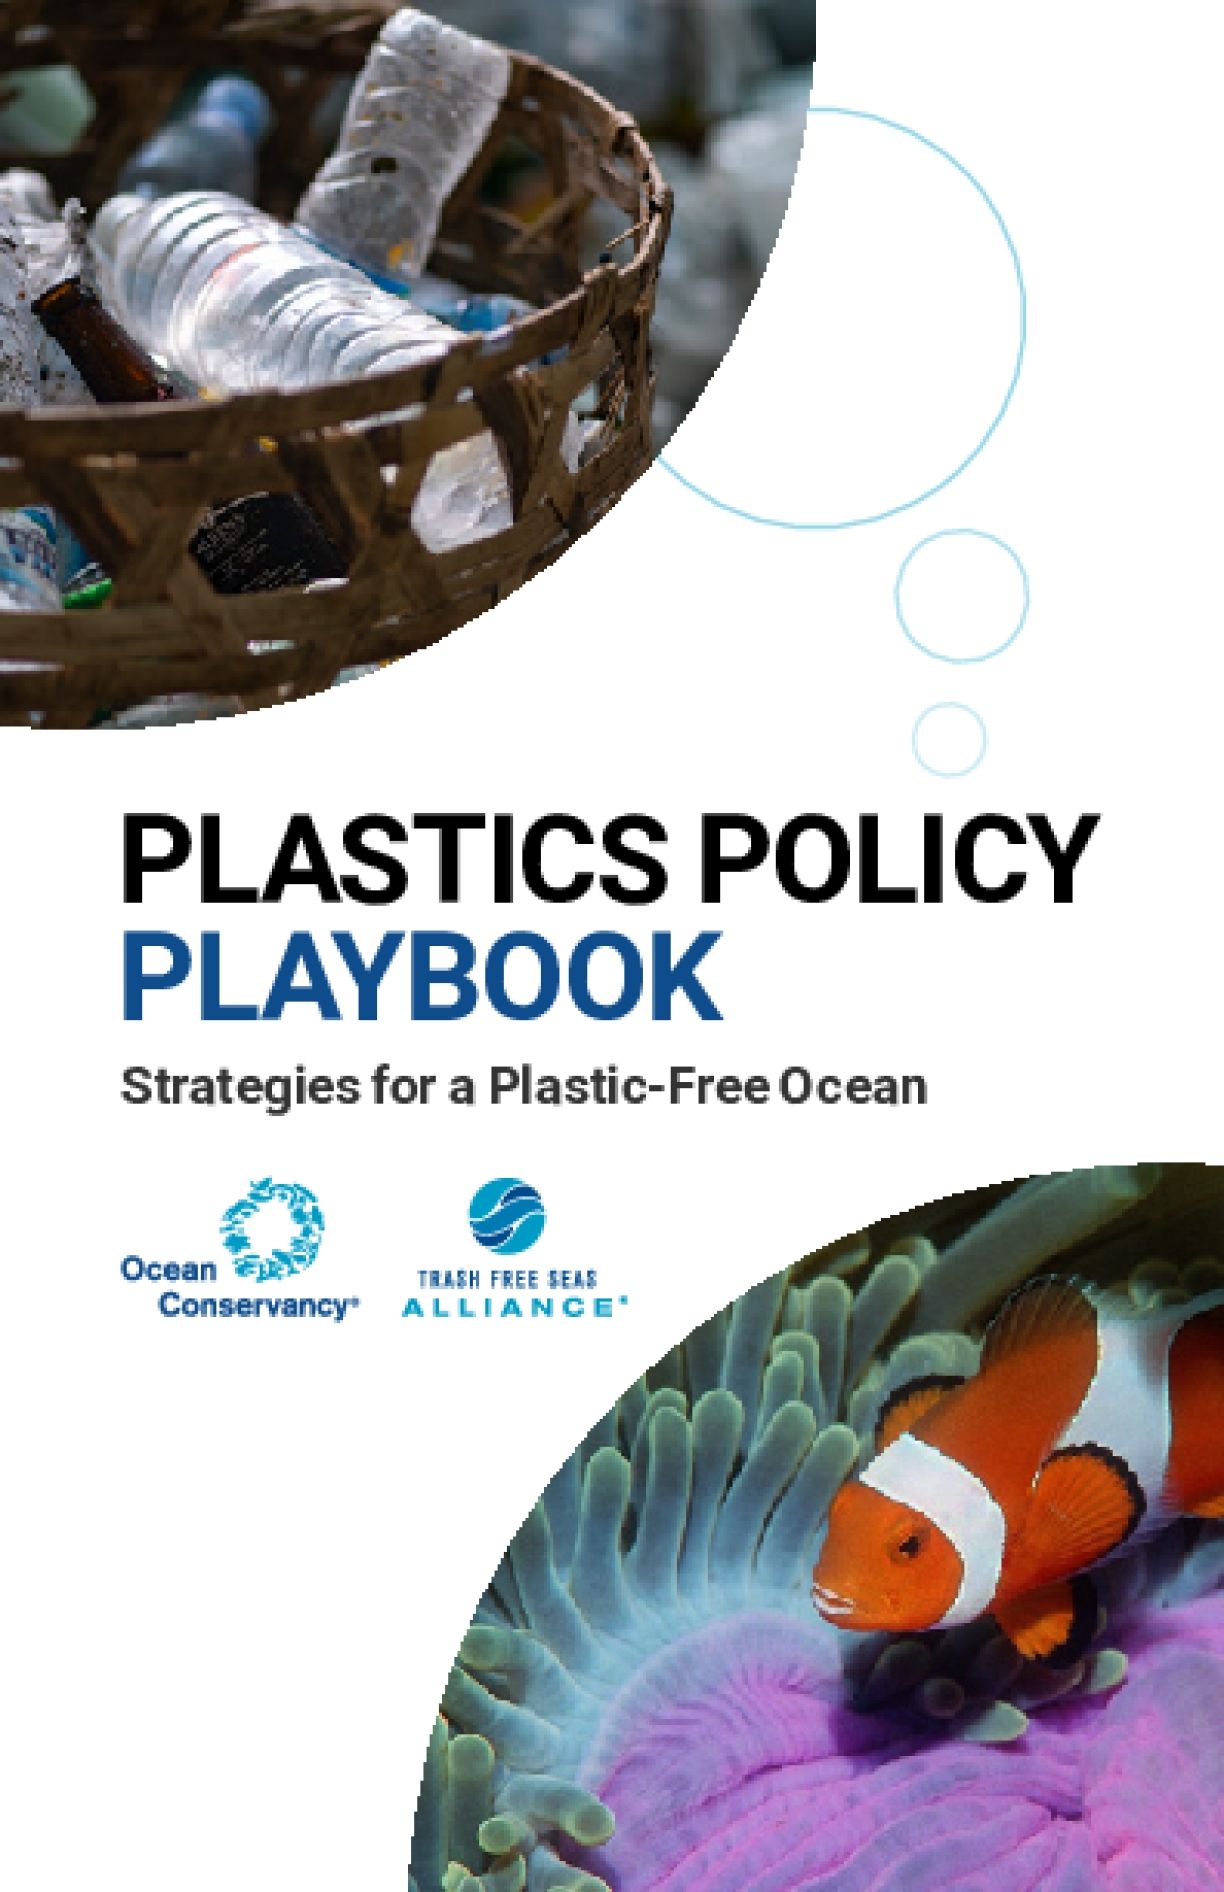 Plastics Policy Playbook: Strategies for a Plastic-Free Ocean